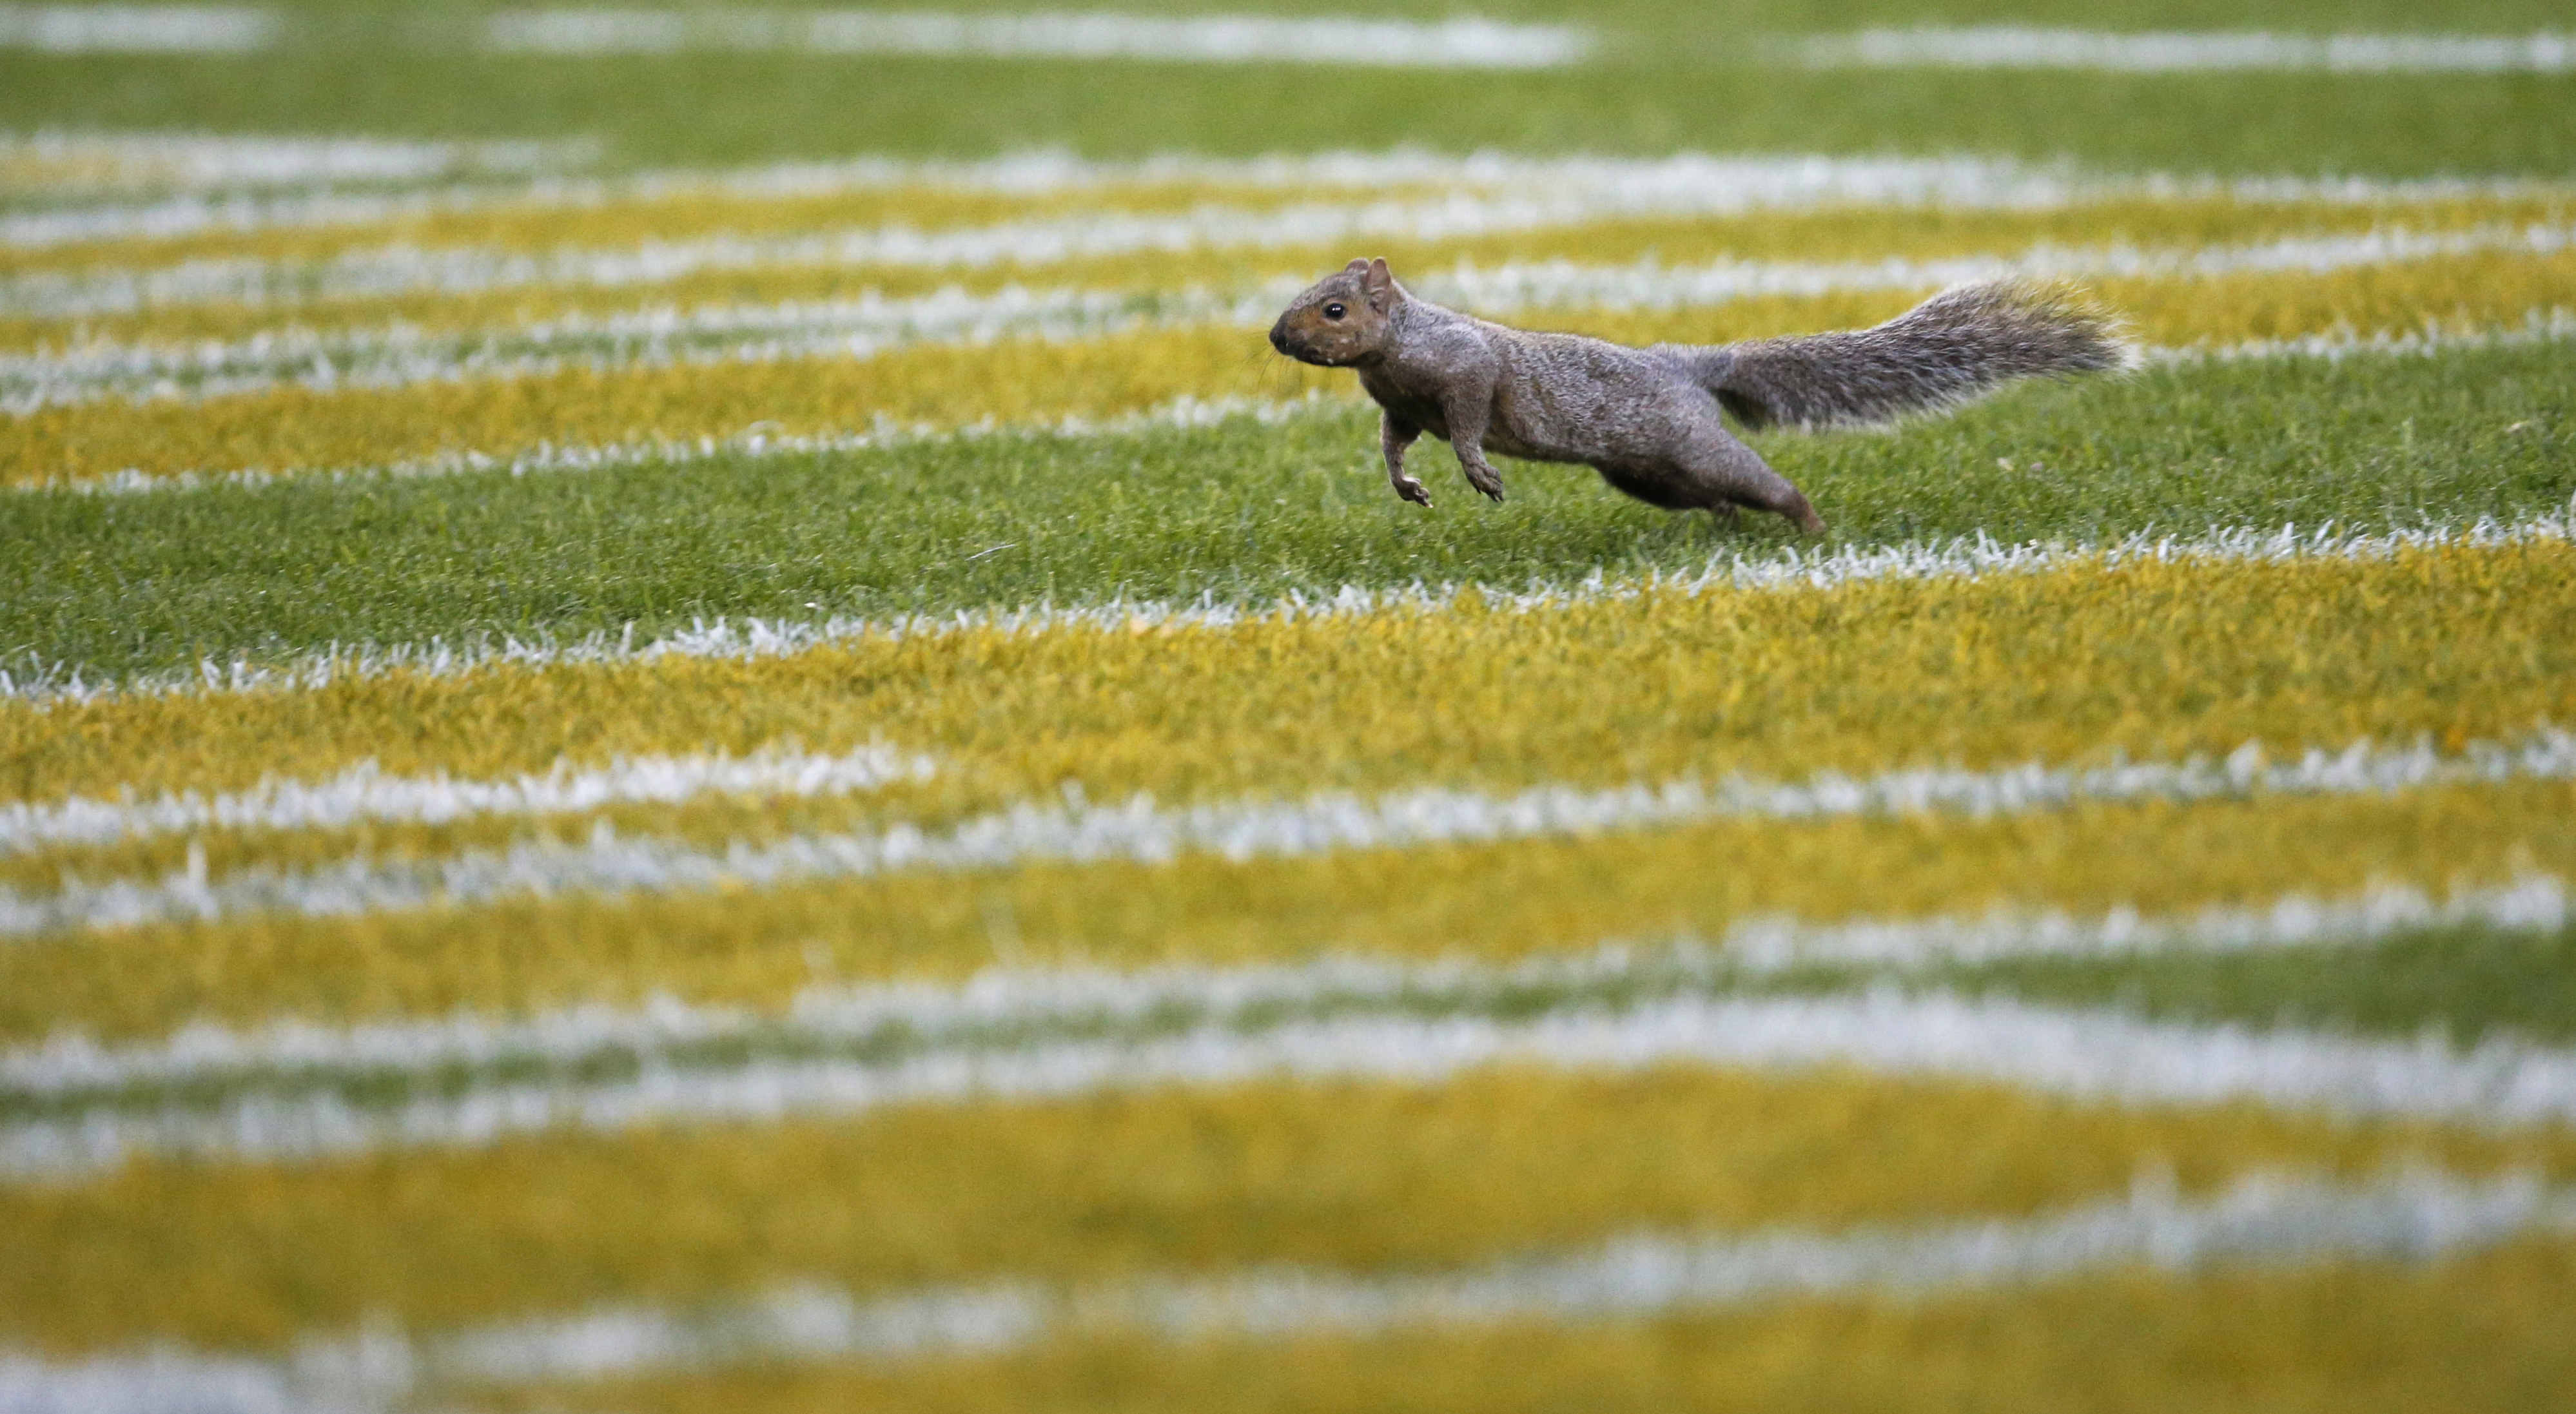 A squirrel runs in the end zone at Lambeau Field during the first half of an NFL football game between the Green Bay Packers and the Indianapolis Colts Sunday, Nov. 6, 2016, in Green Bay, Wis. (AP Photo/Mike Roemer)